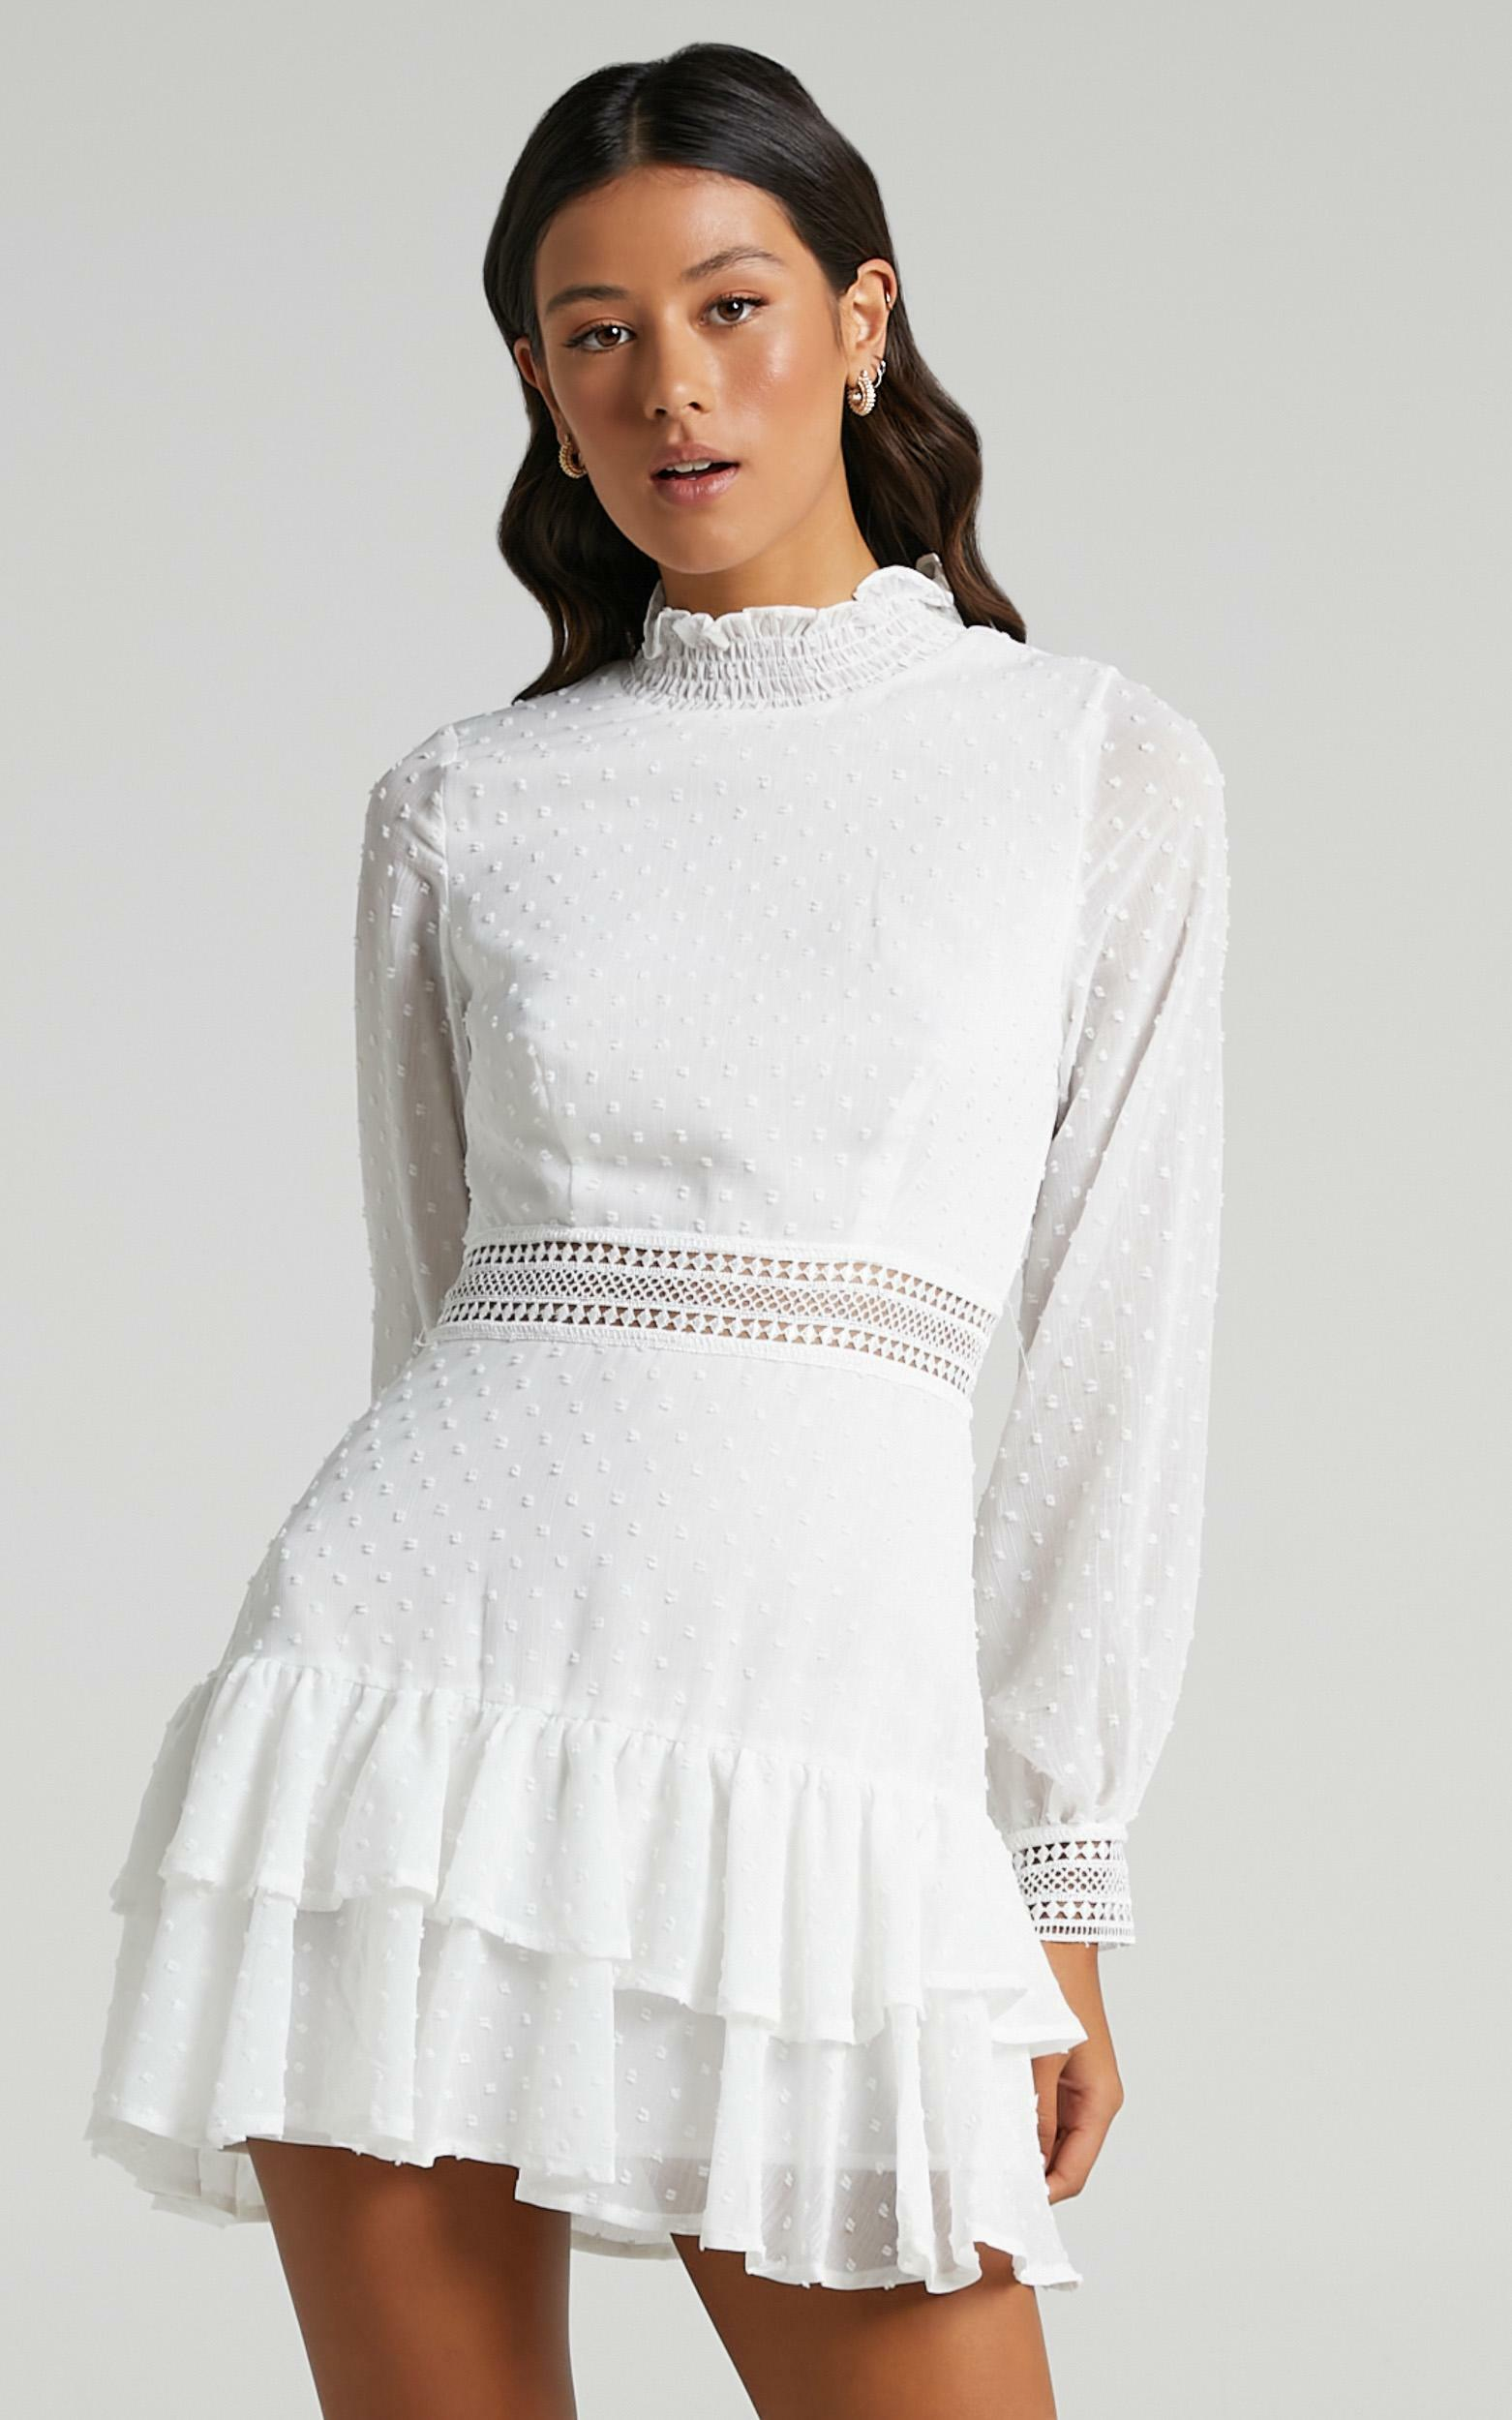 Are You Gonna Kiss Me Long Sleeve Mini Dress in White - 20, WHT6, hi-res image number null